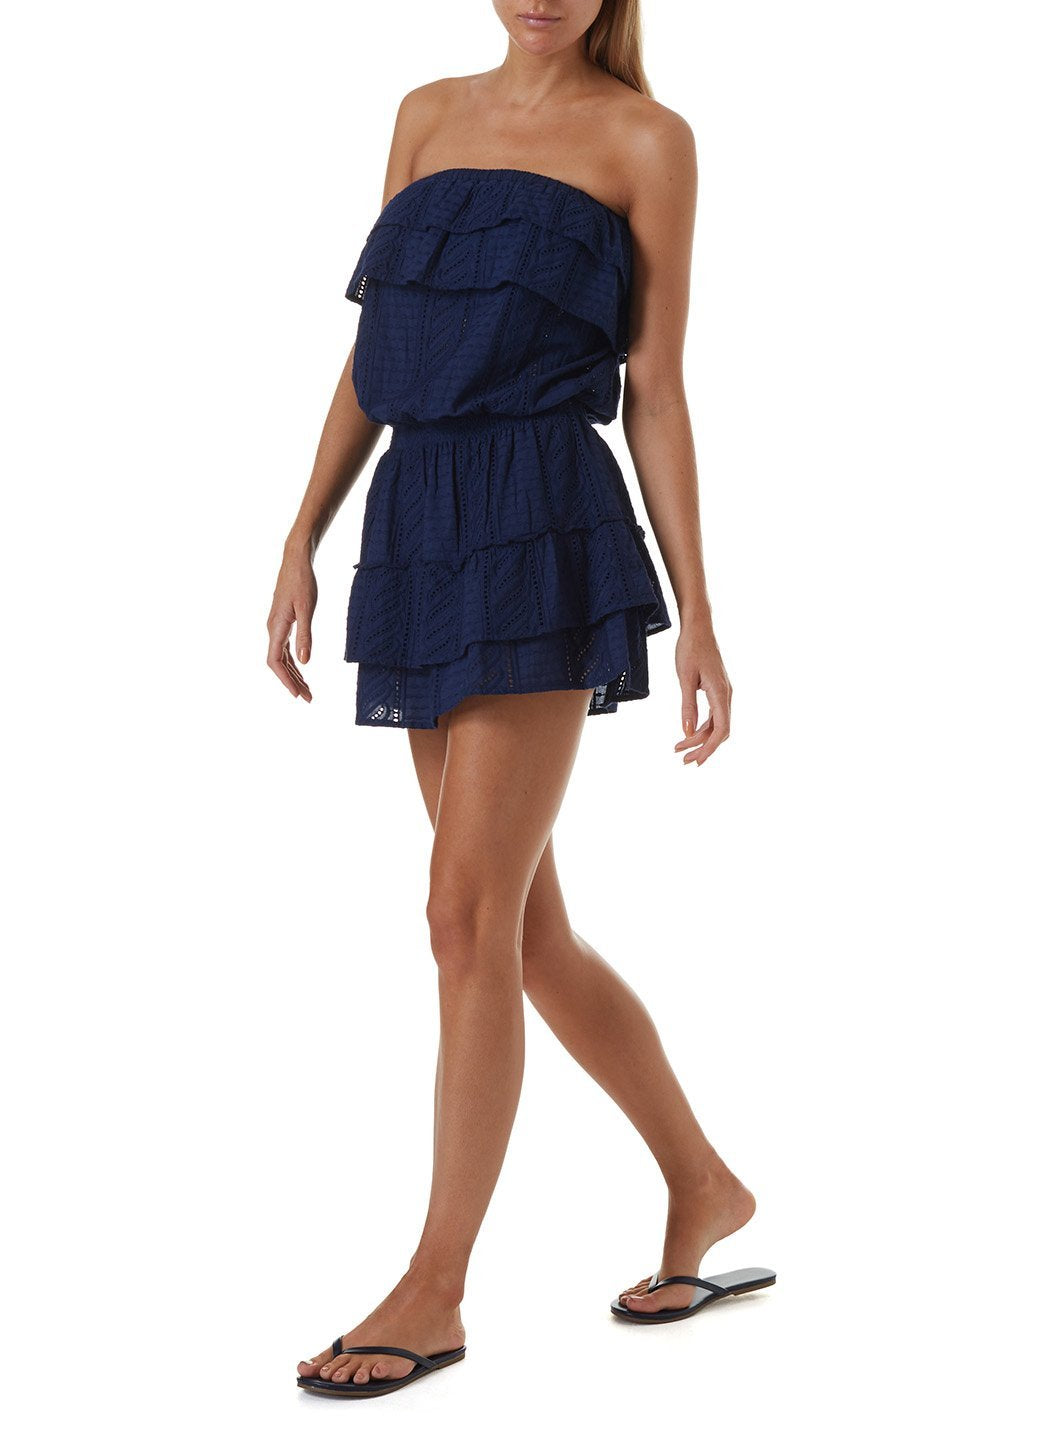 mia navy short dress